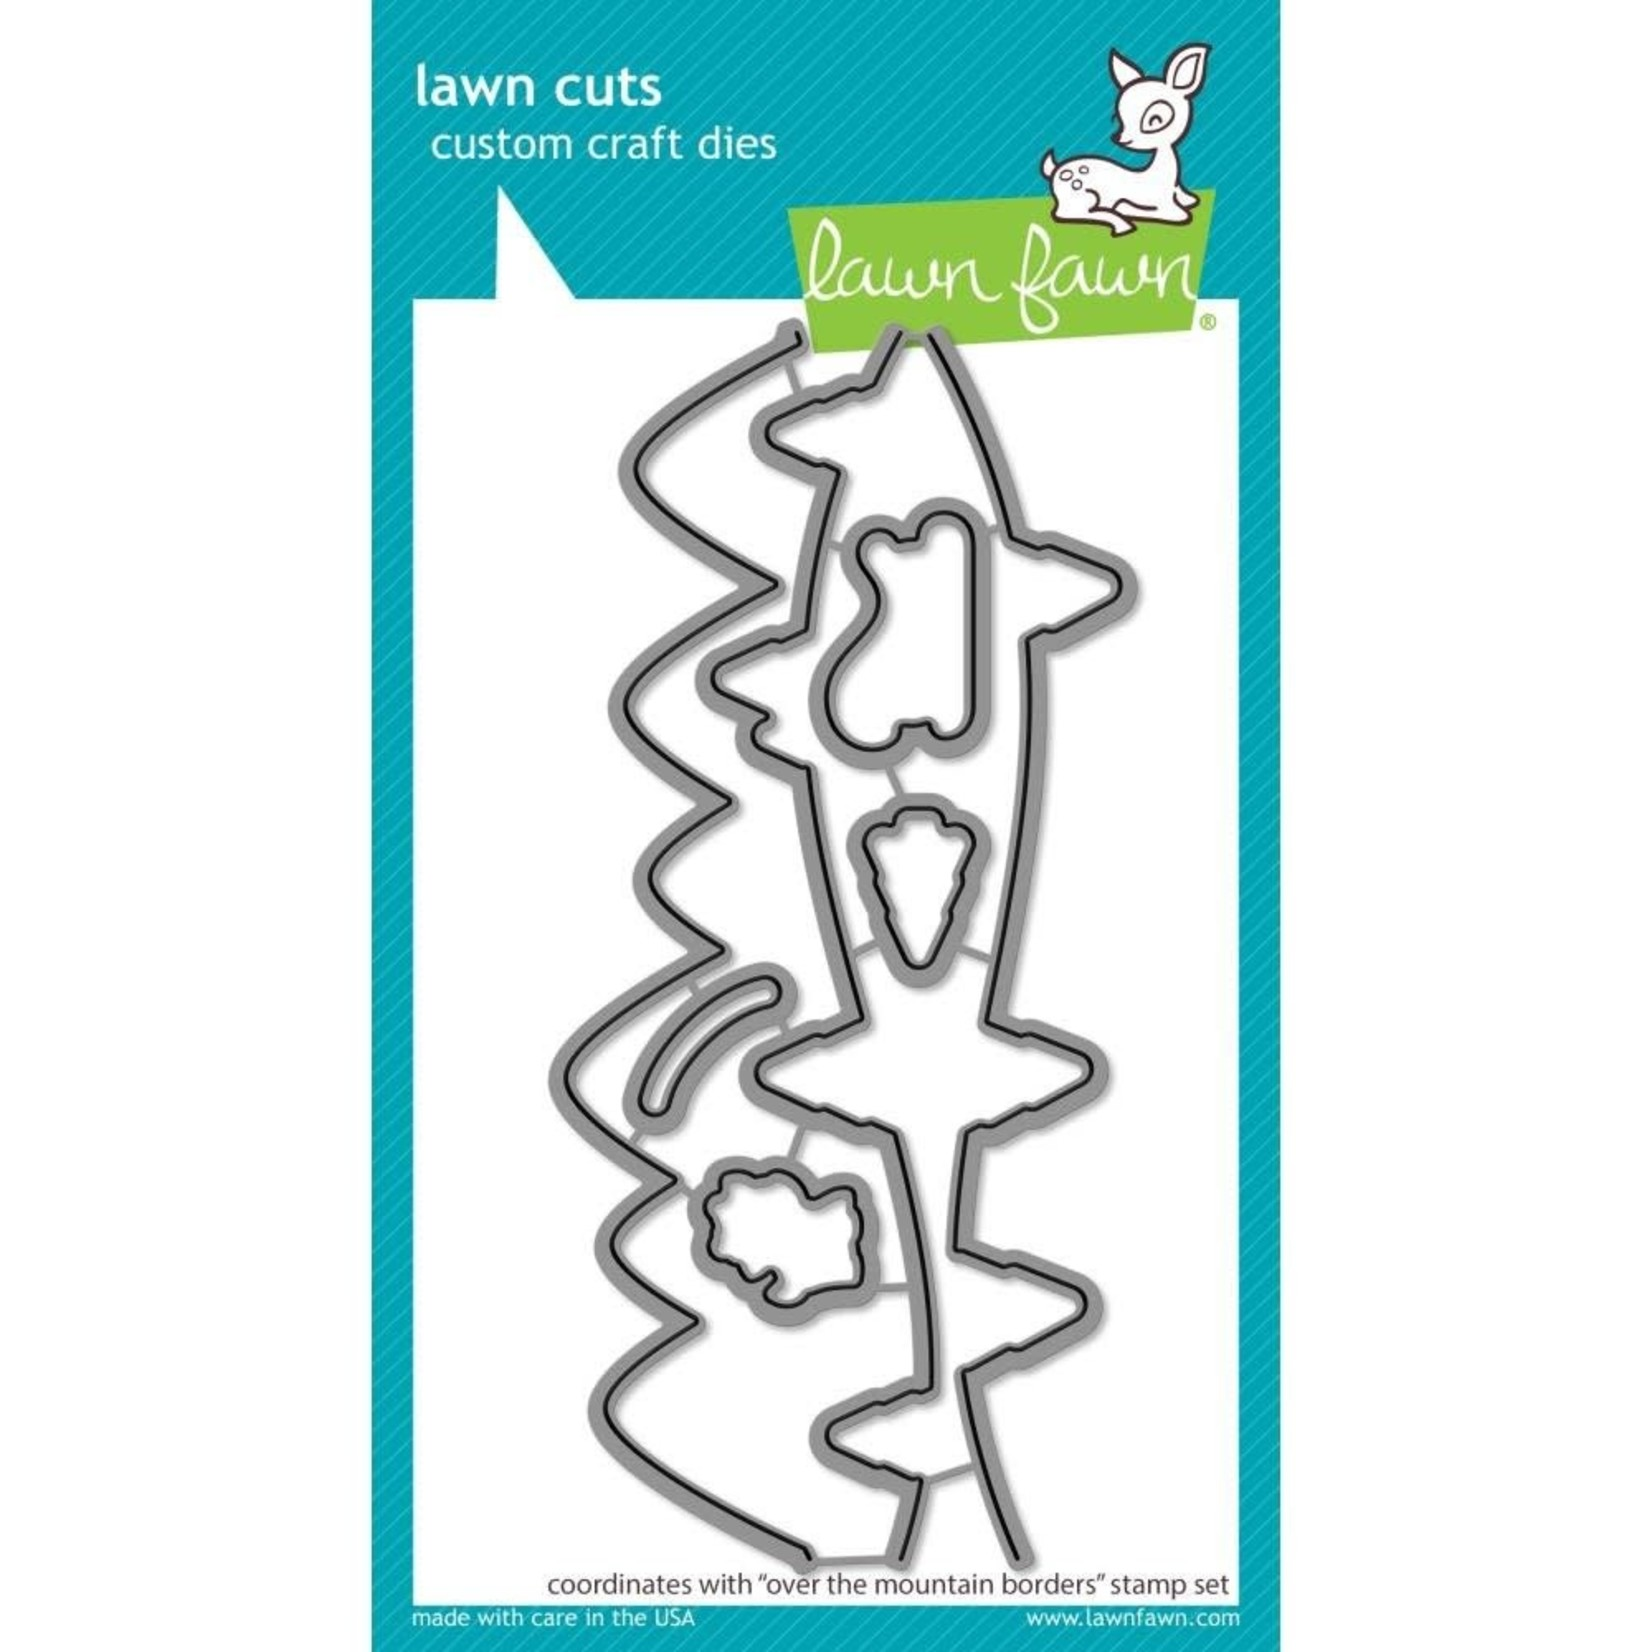 Lawn Fawn Lawn Cuts Custom Craft Die -Over The Mountain Borders